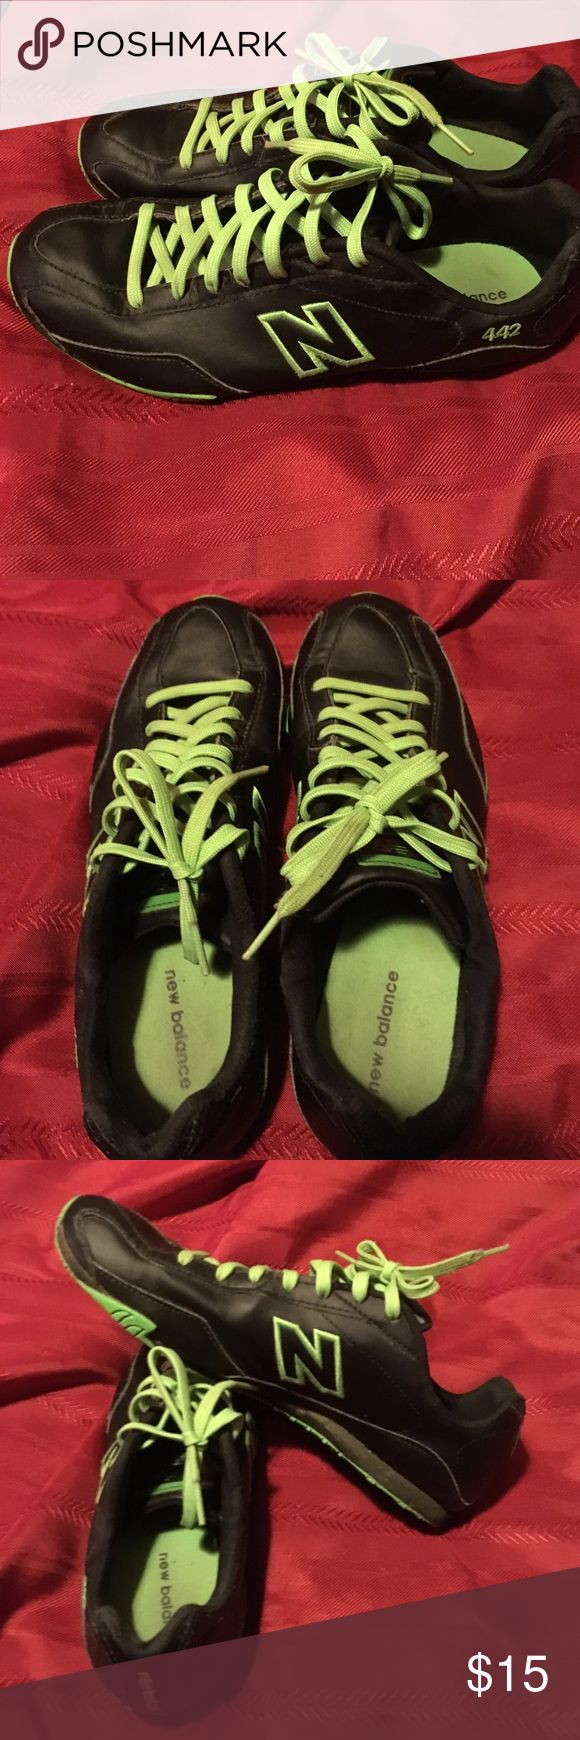 New Balance Woman's Shoes! Black &Green New Balance 442 9 1/2 Women's New Balance Shoes Athletic Shoes